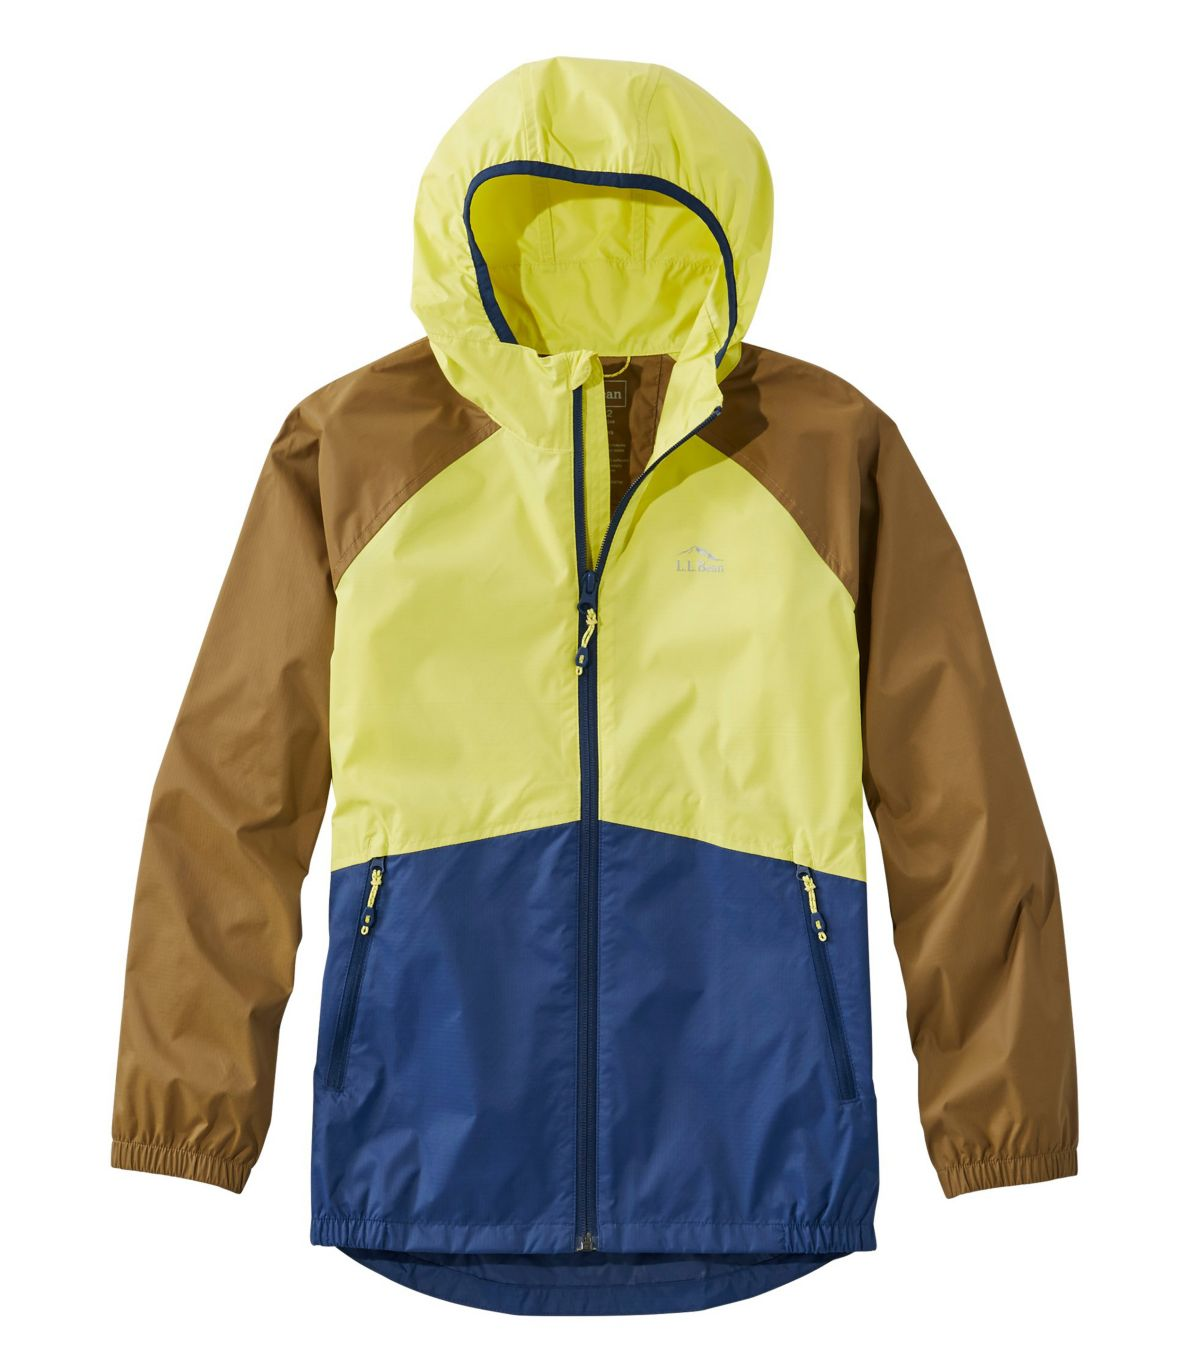 Kids' Wind and Rain Jacket